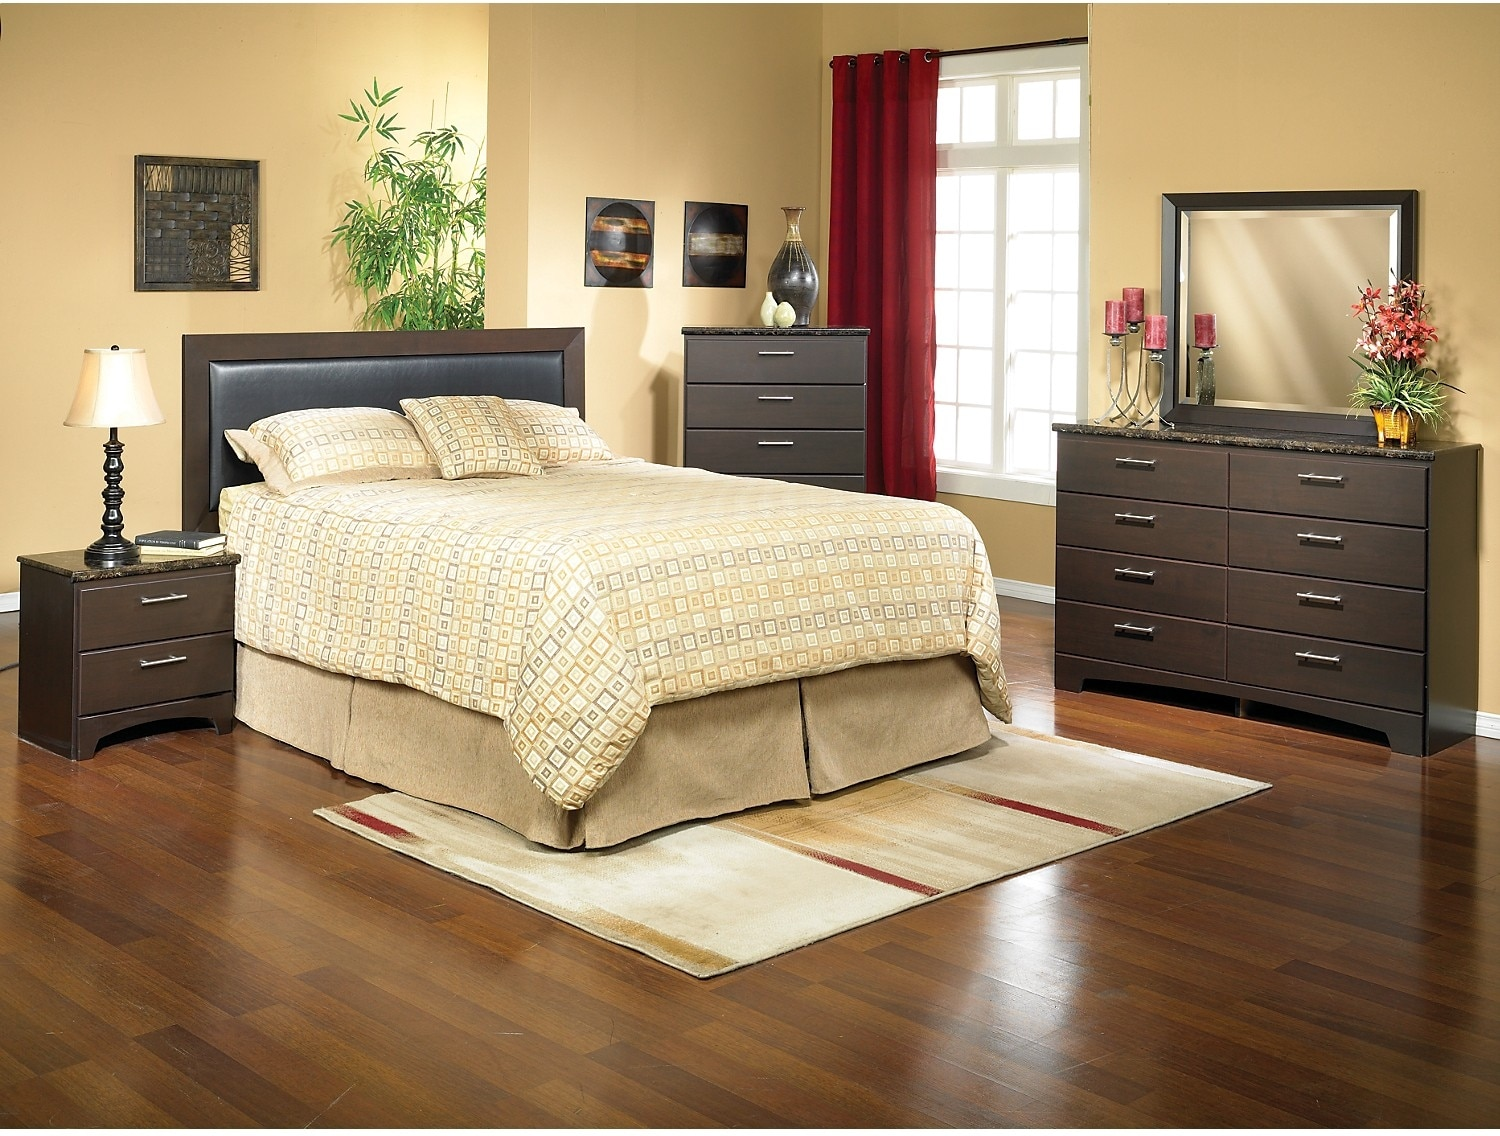 Bedroom packages the brick for Bedroom furniture packages sale